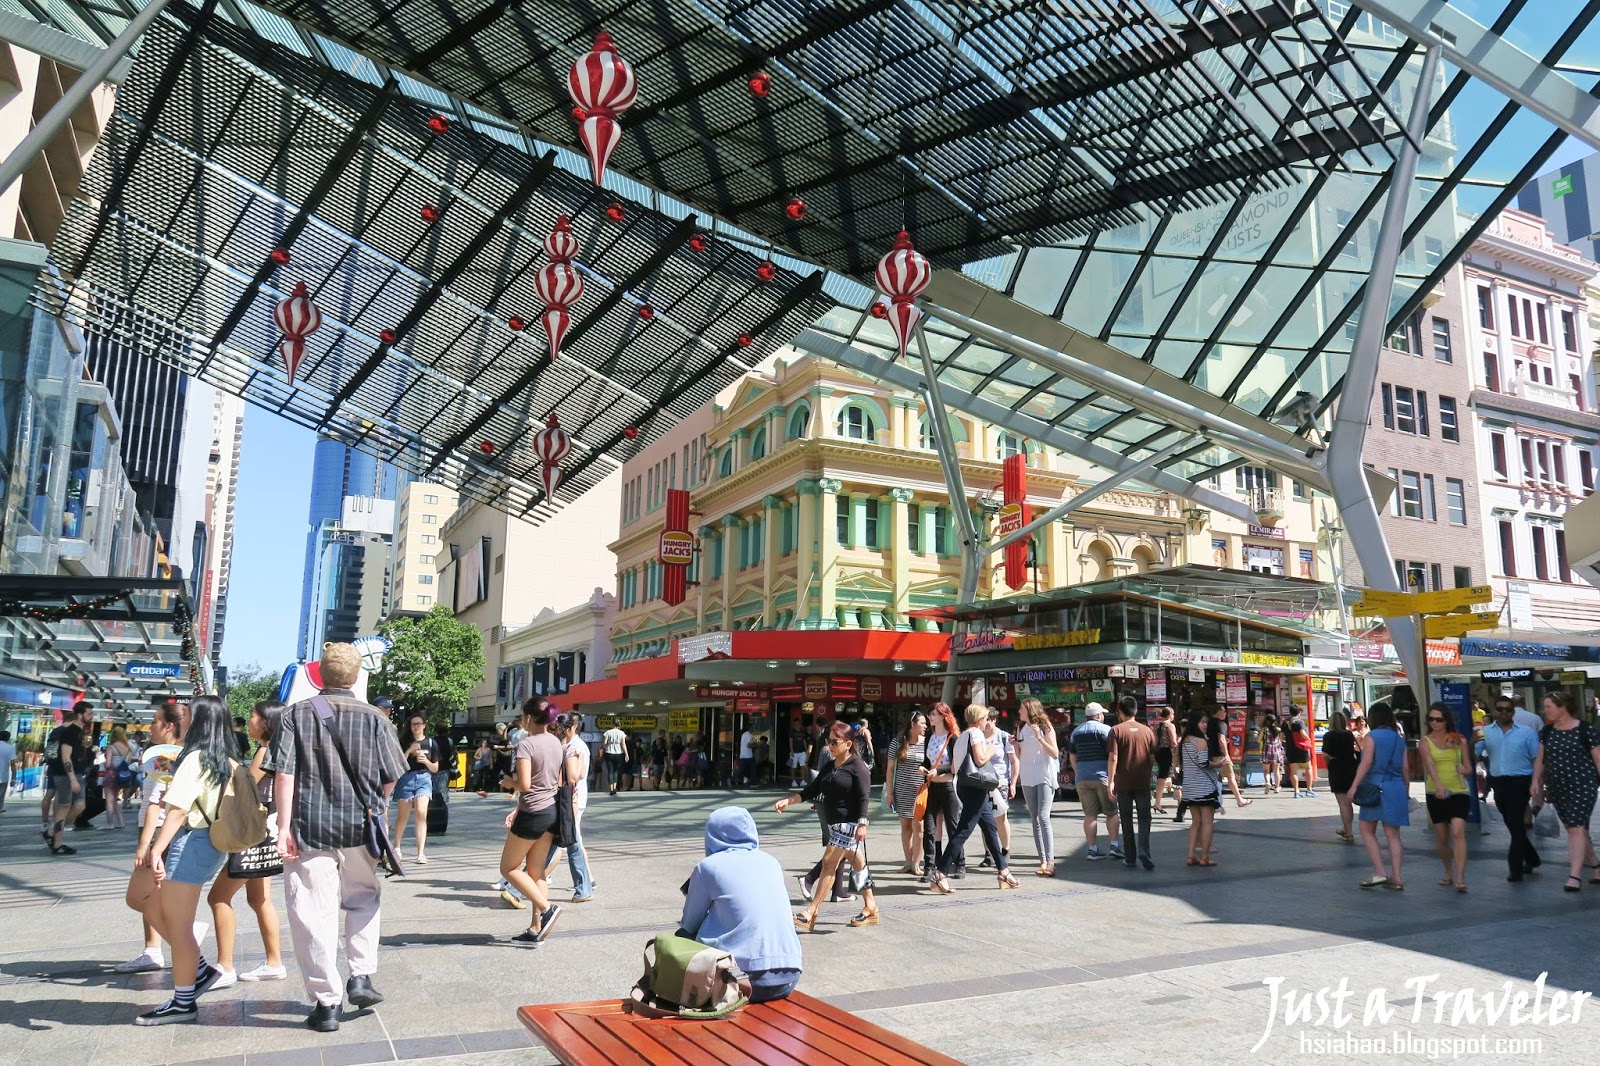 布里斯本-景點-推薦-皇后街-旅遊-自由行-Brisbane-Attraction-Queen-Street-Shopping-Mall-Tourist-destination